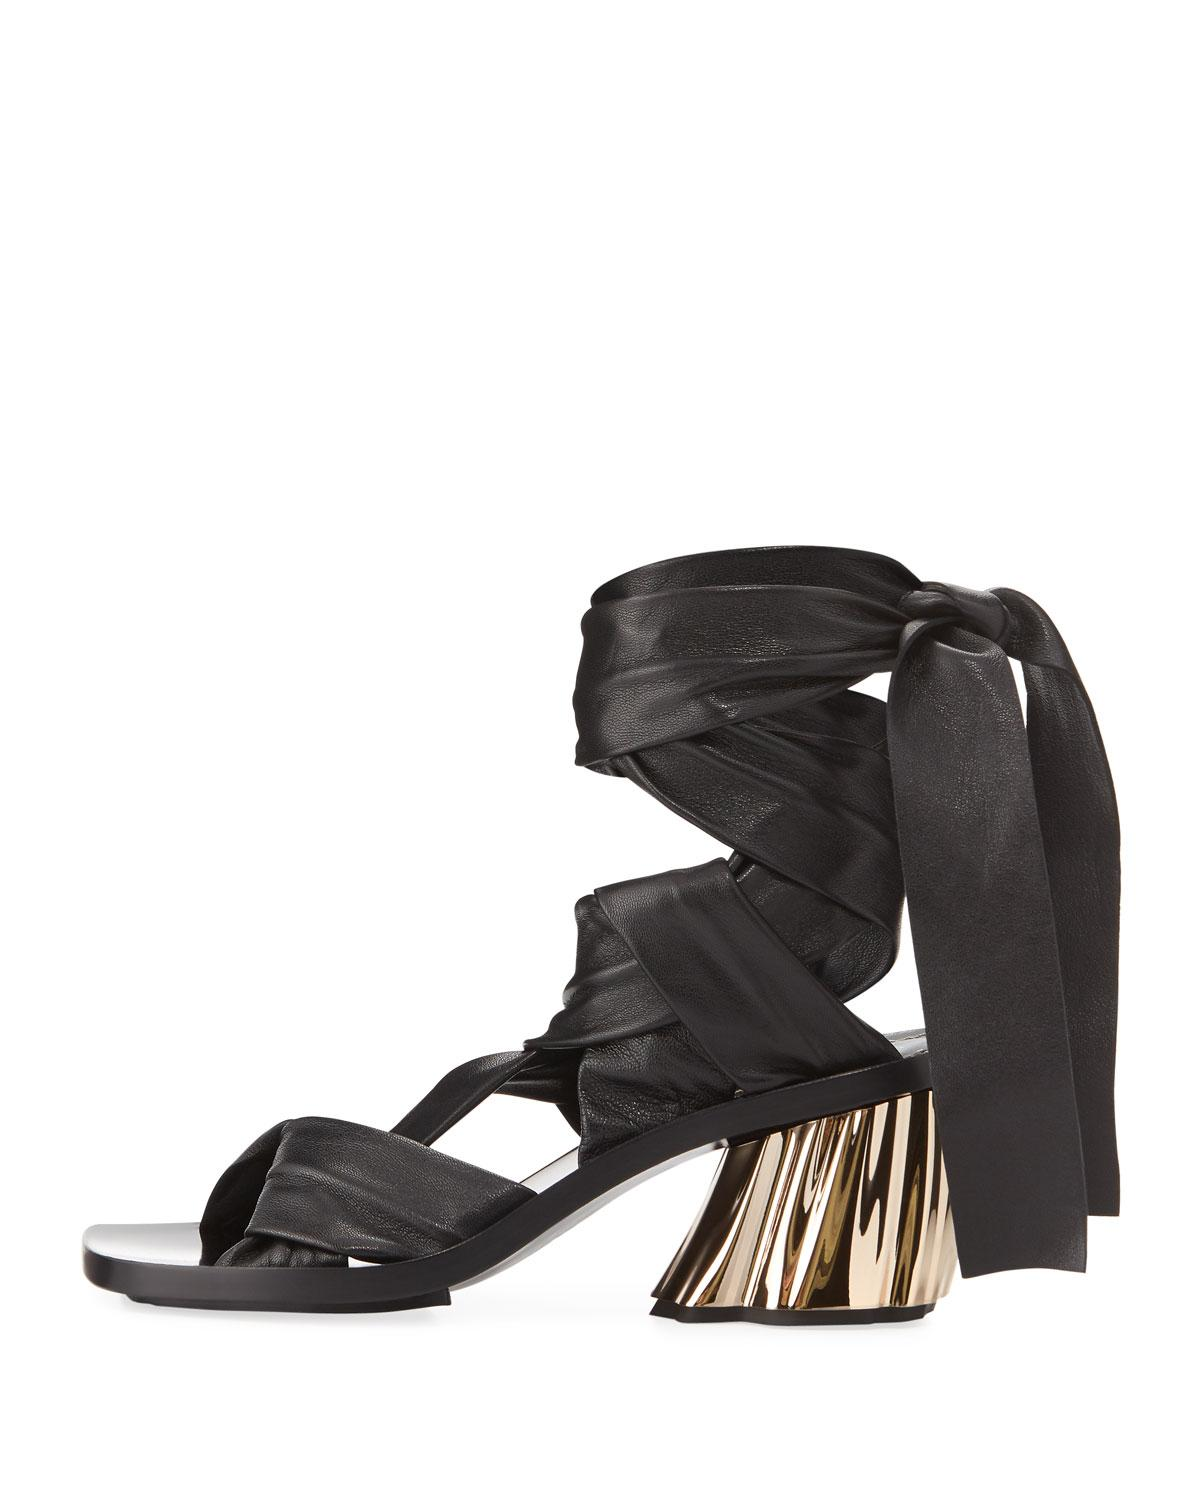 da28f68b2ff90 Lyst - Proenza Schouler Xmm Leather Ankle-wrap Sandal Black in Black